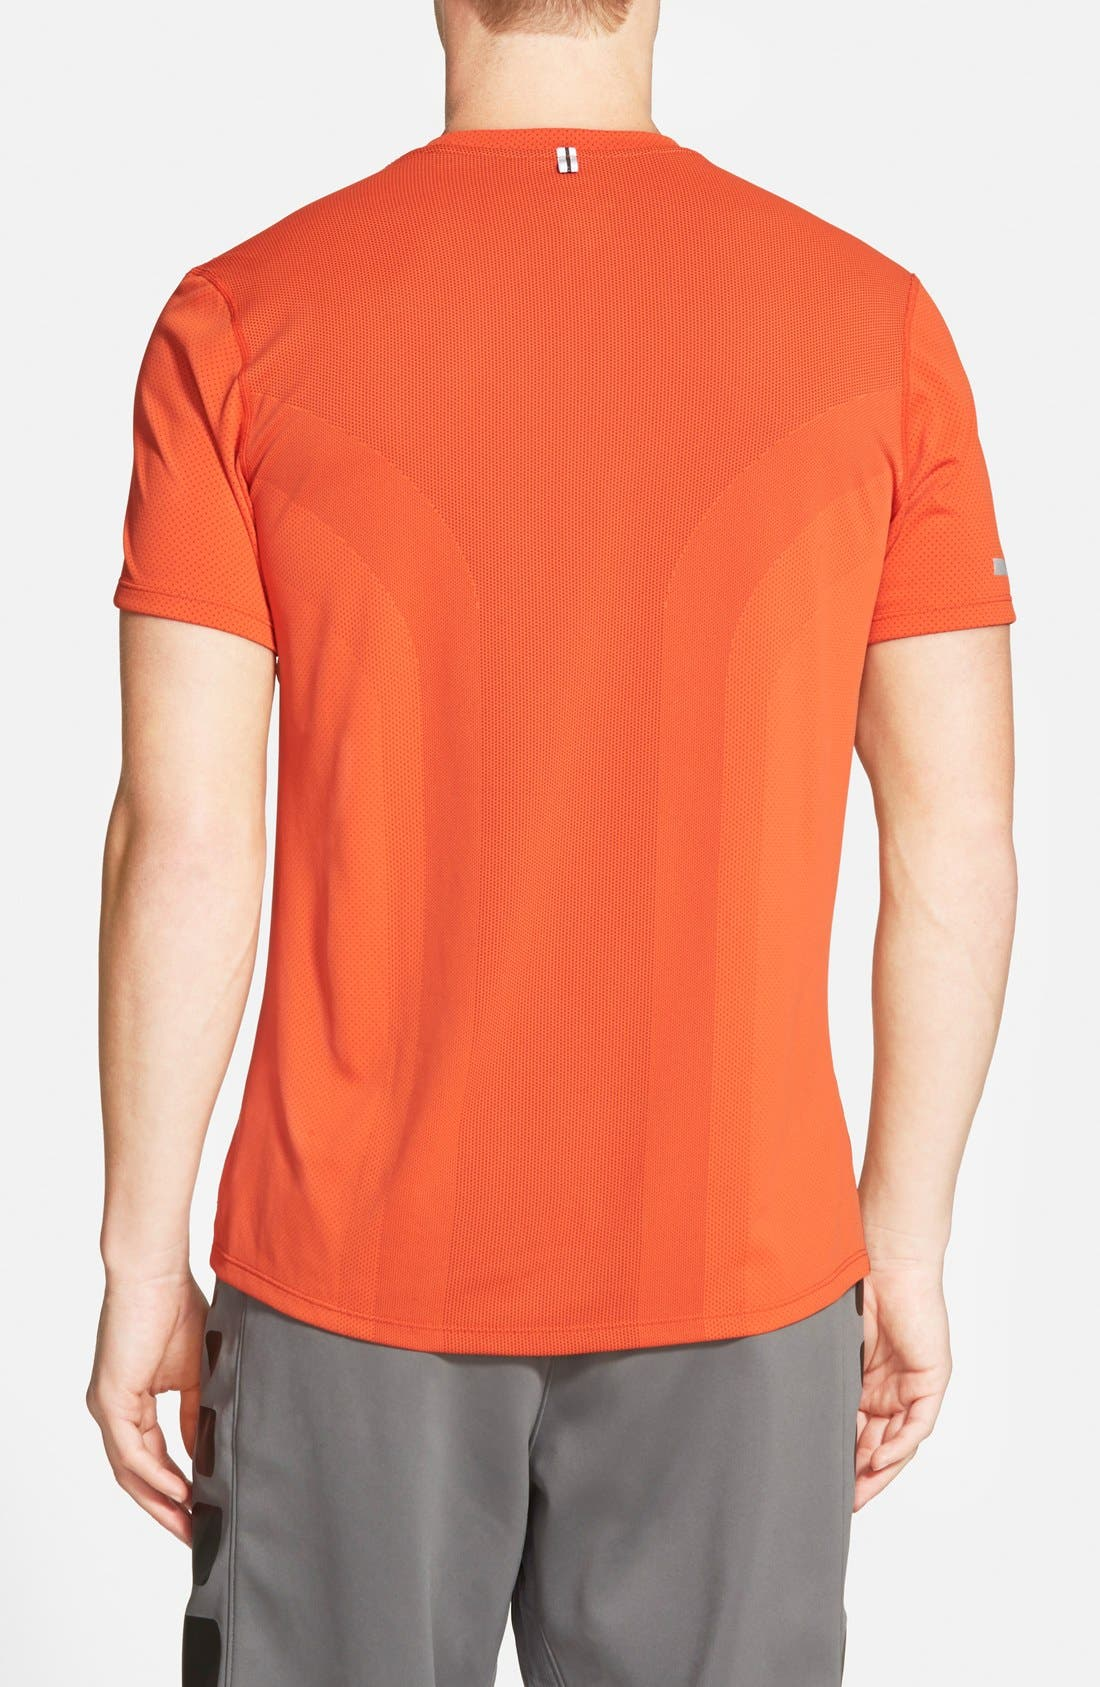 'Contour' Mesh Dri-FIT Running T-Shirt,                             Alternate thumbnail 14, color,